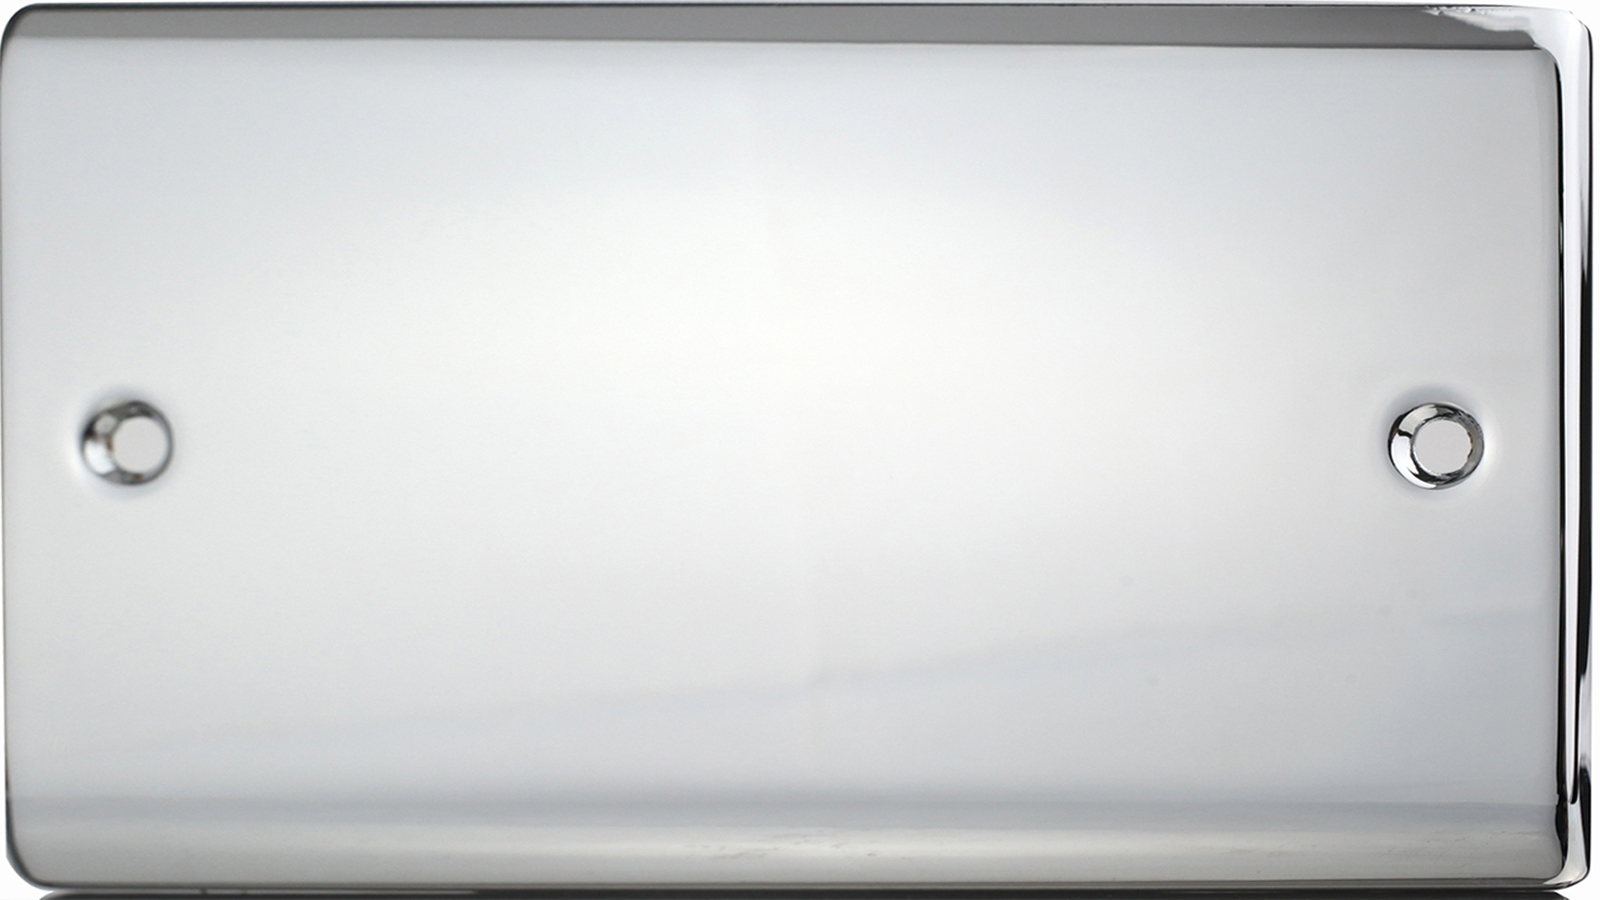 Premspec 2G Blank Plate Polished Chrome